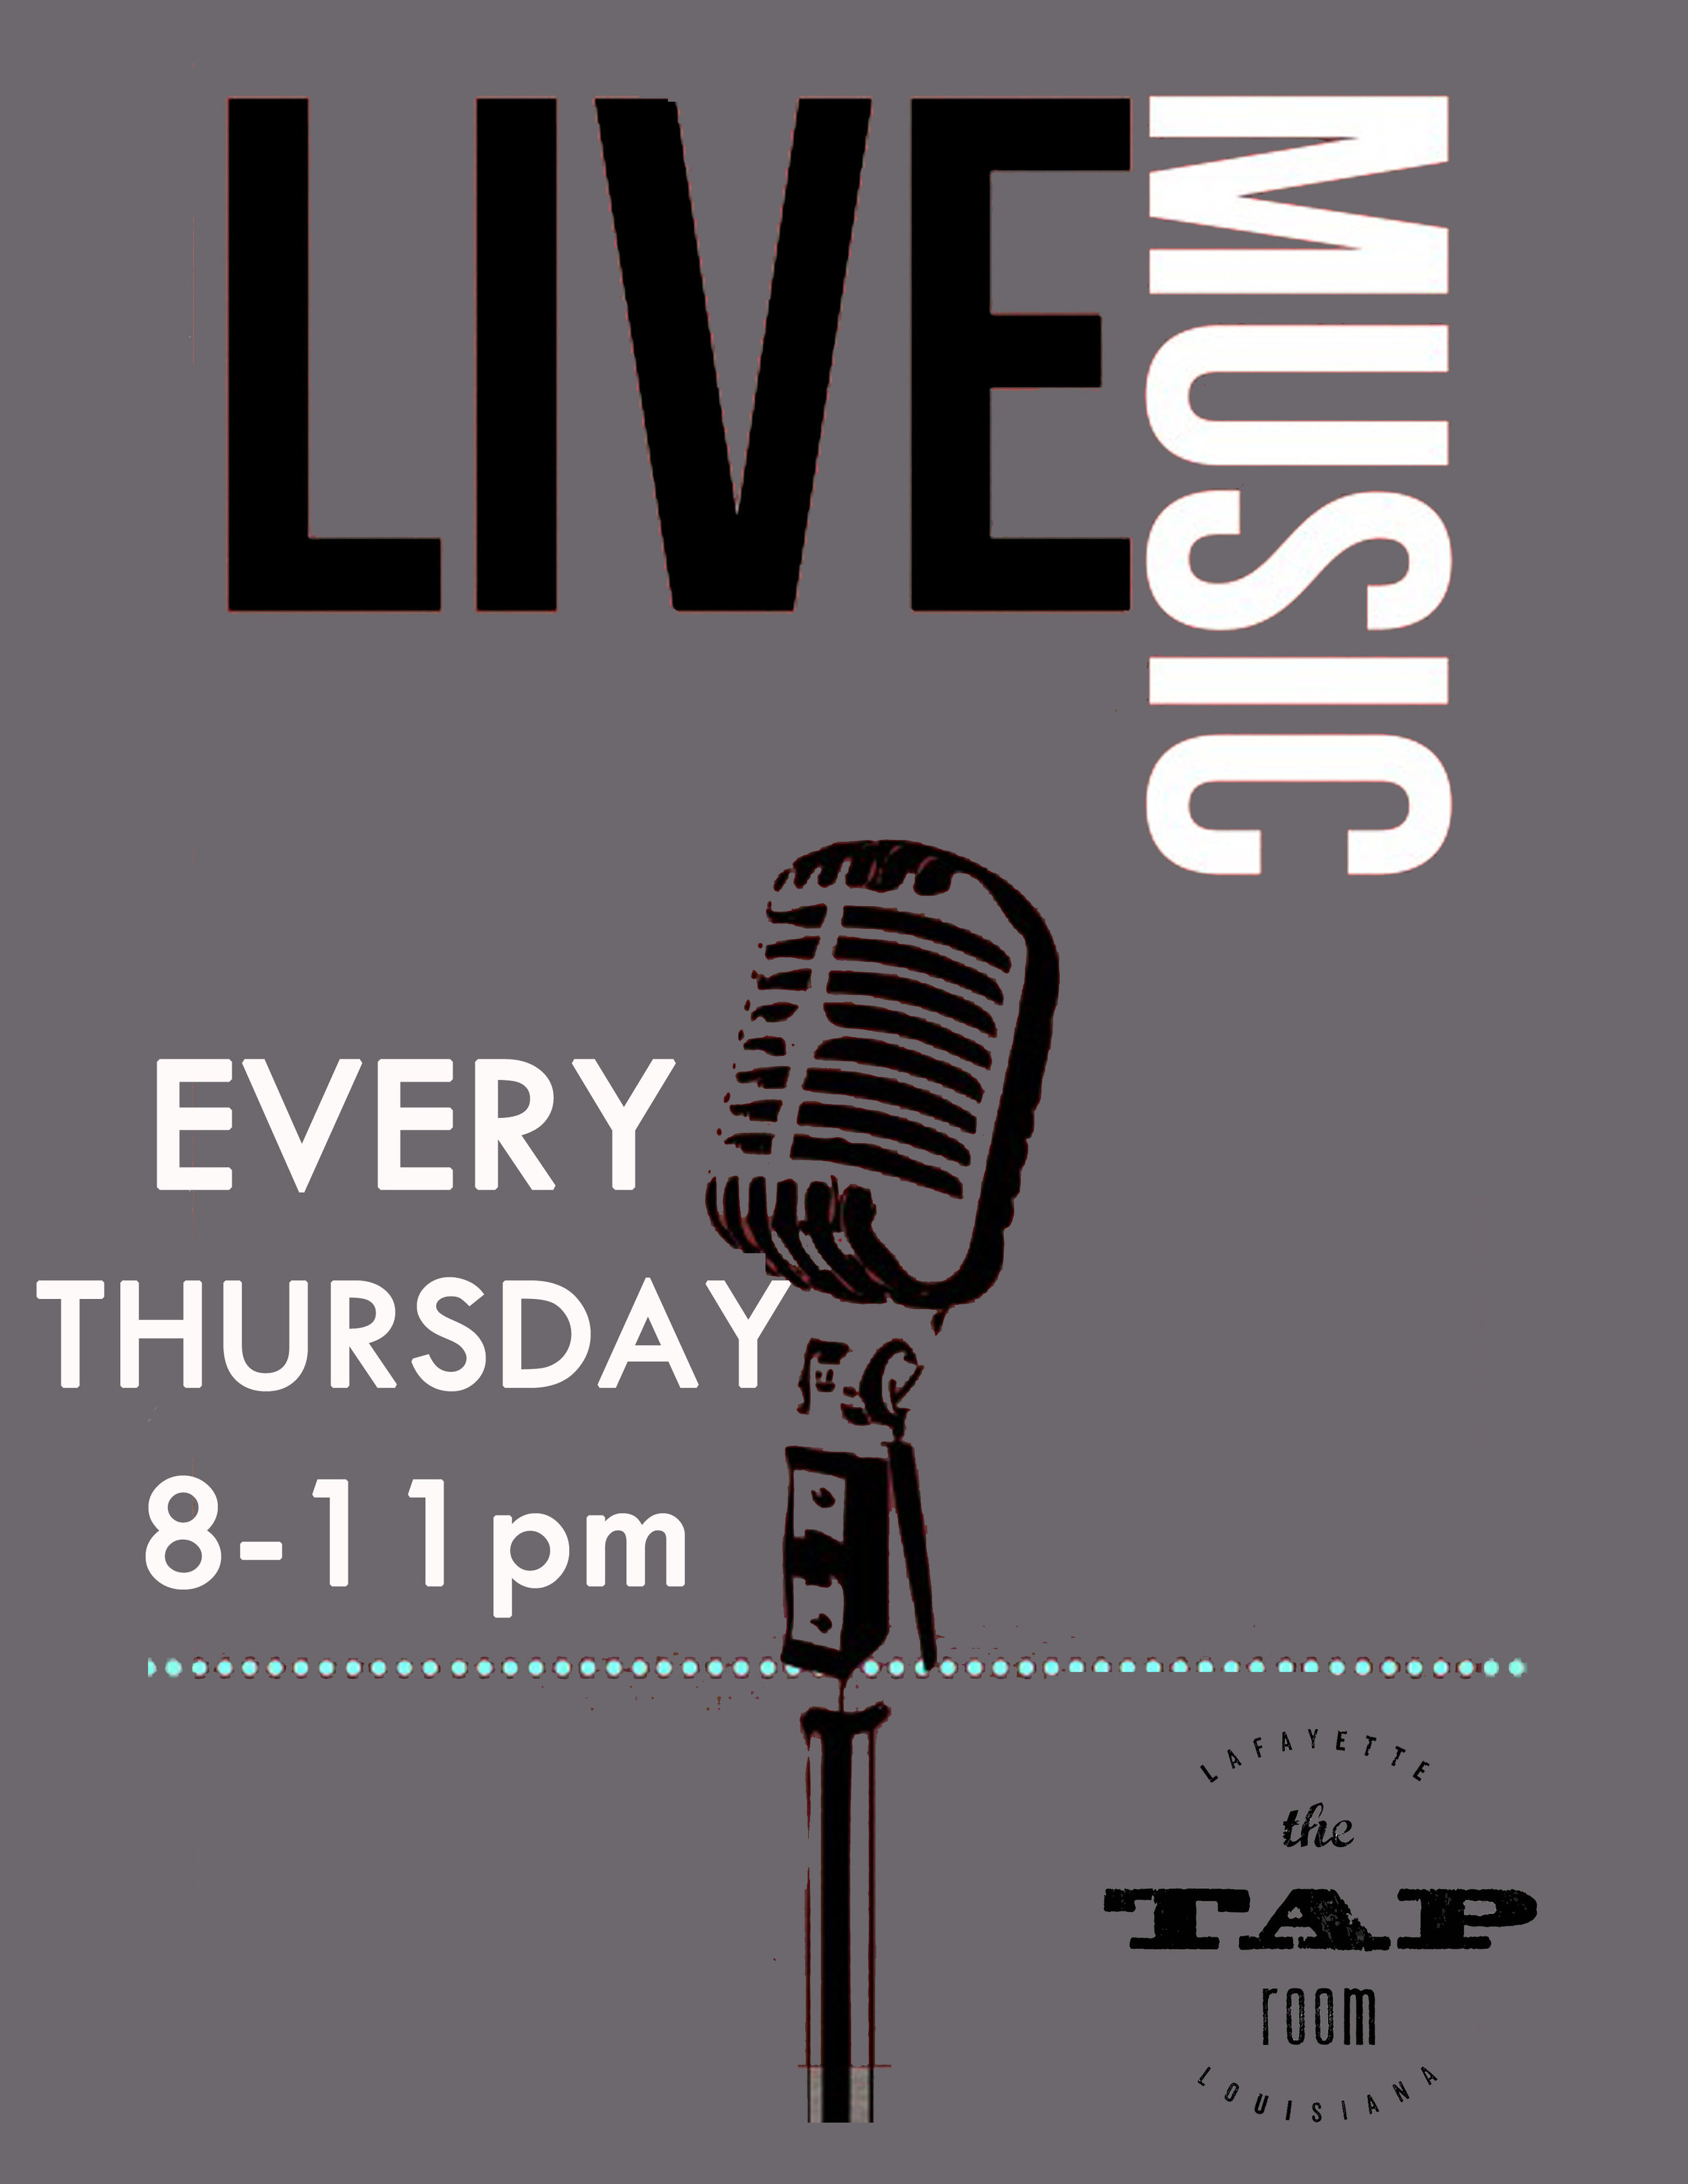 ThursdaySpecial: - LIVE MUSIC 8:00-11:00PM$5.00 Jack & Crown all night